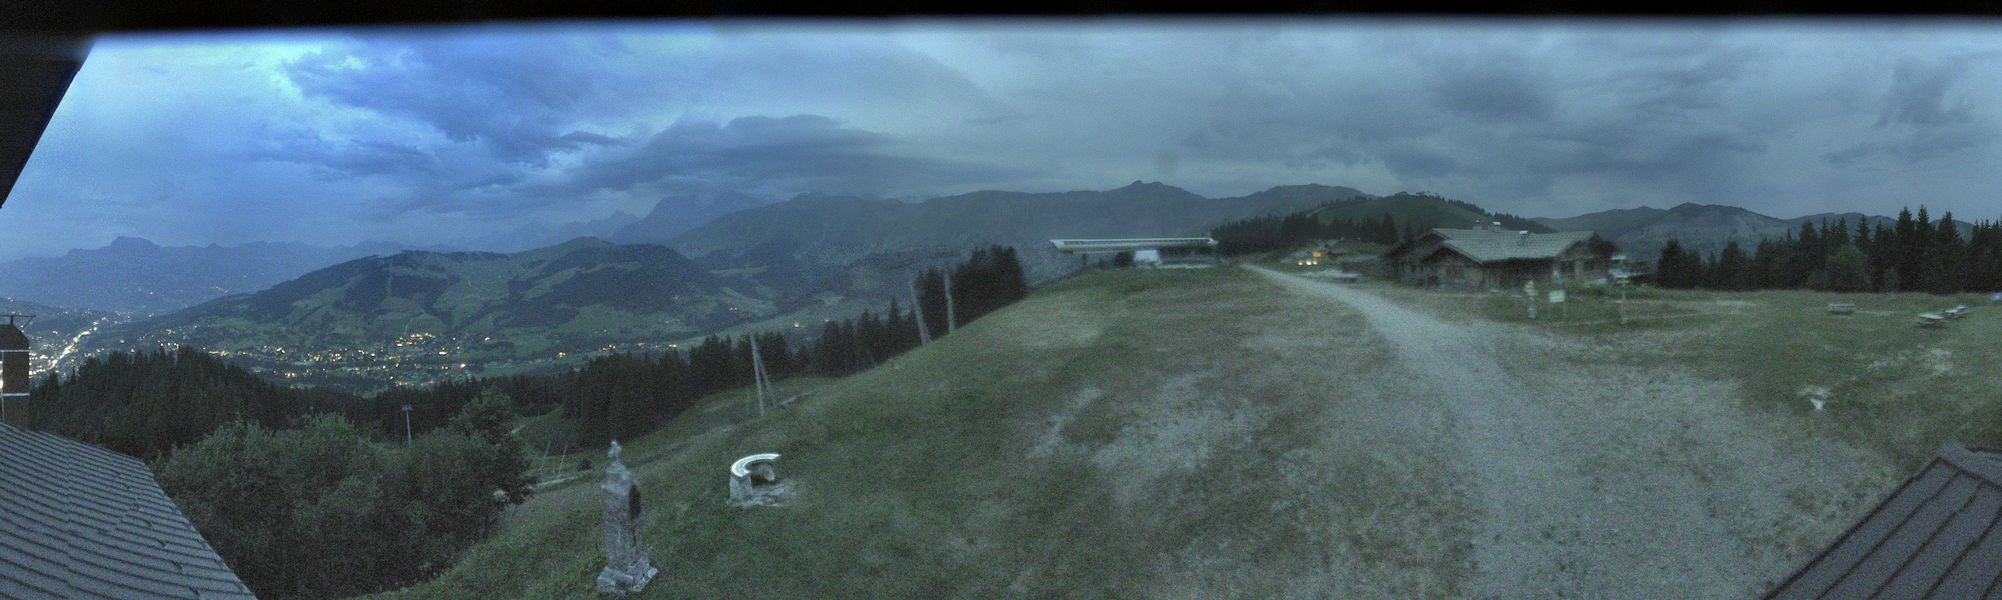 Webcam Megeve Roche Brune